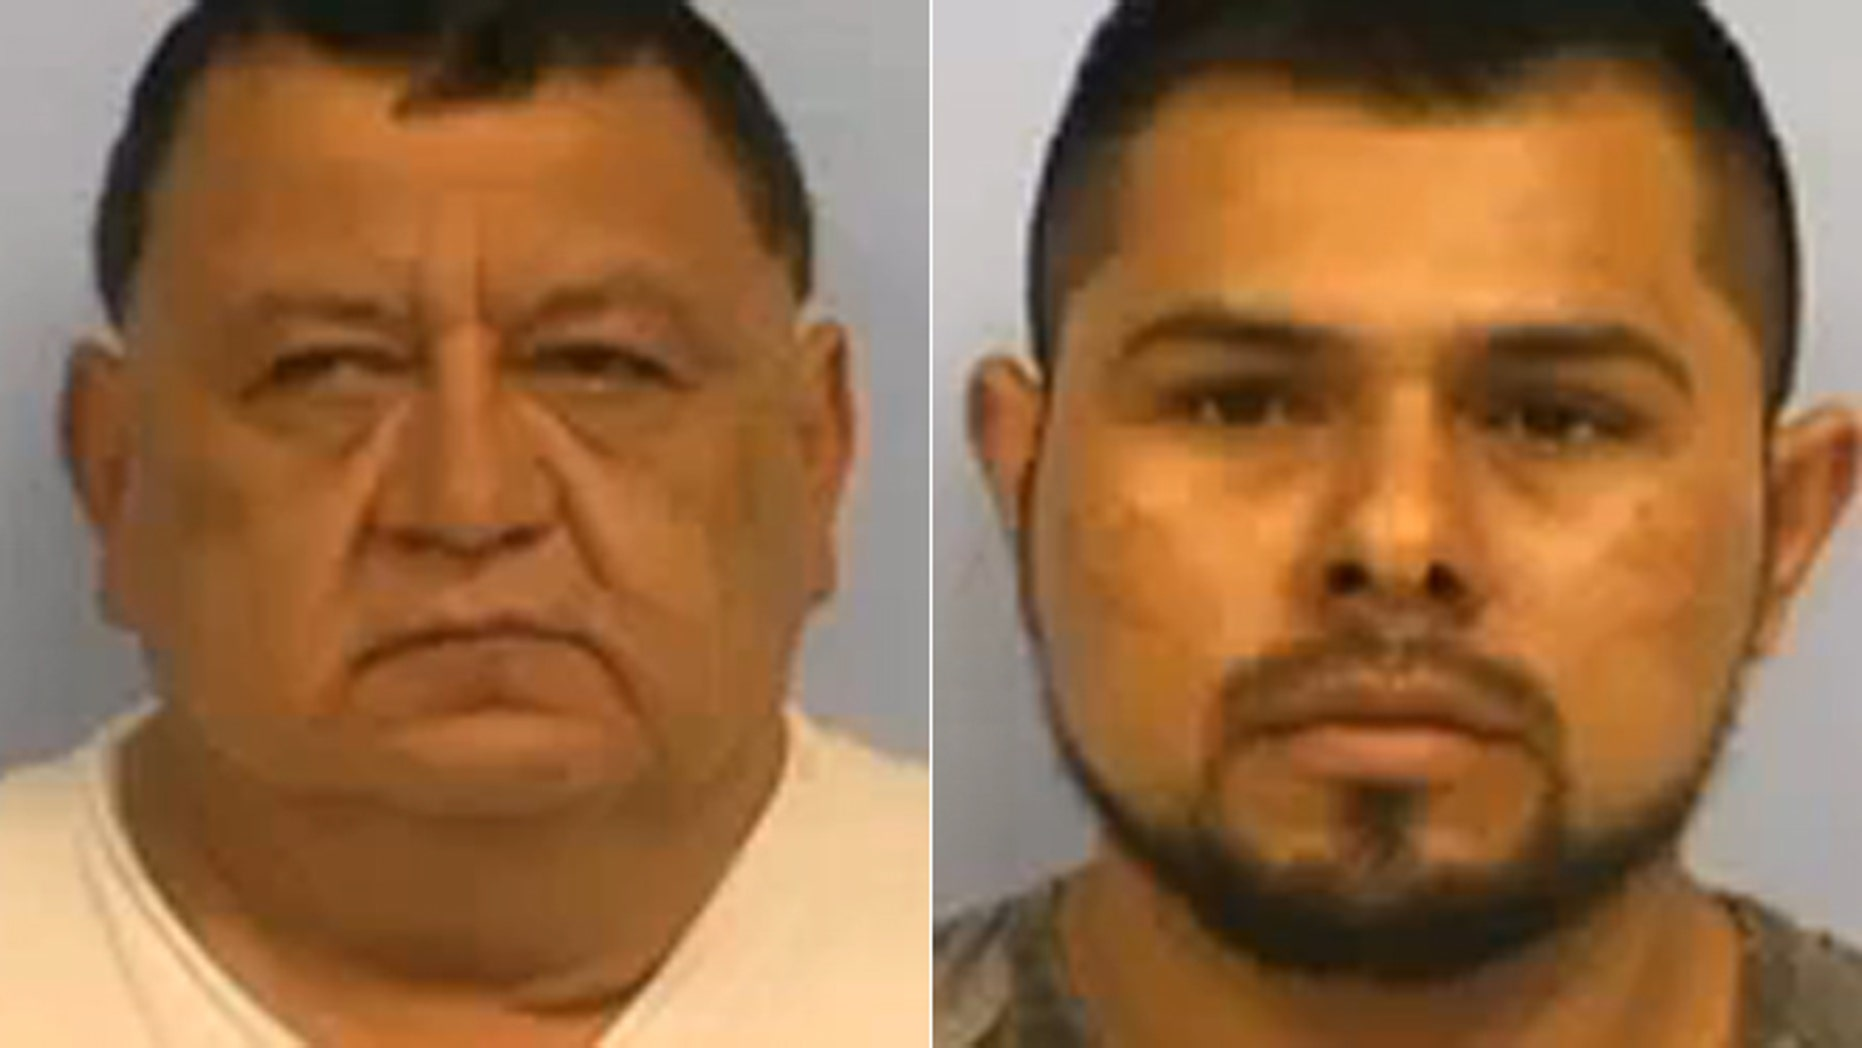 Guilibaldo Gonzalez Puente, left, and Alejandro Centeno Alvarez allegedly manipulated gas pumps and sold gas at discount rate.